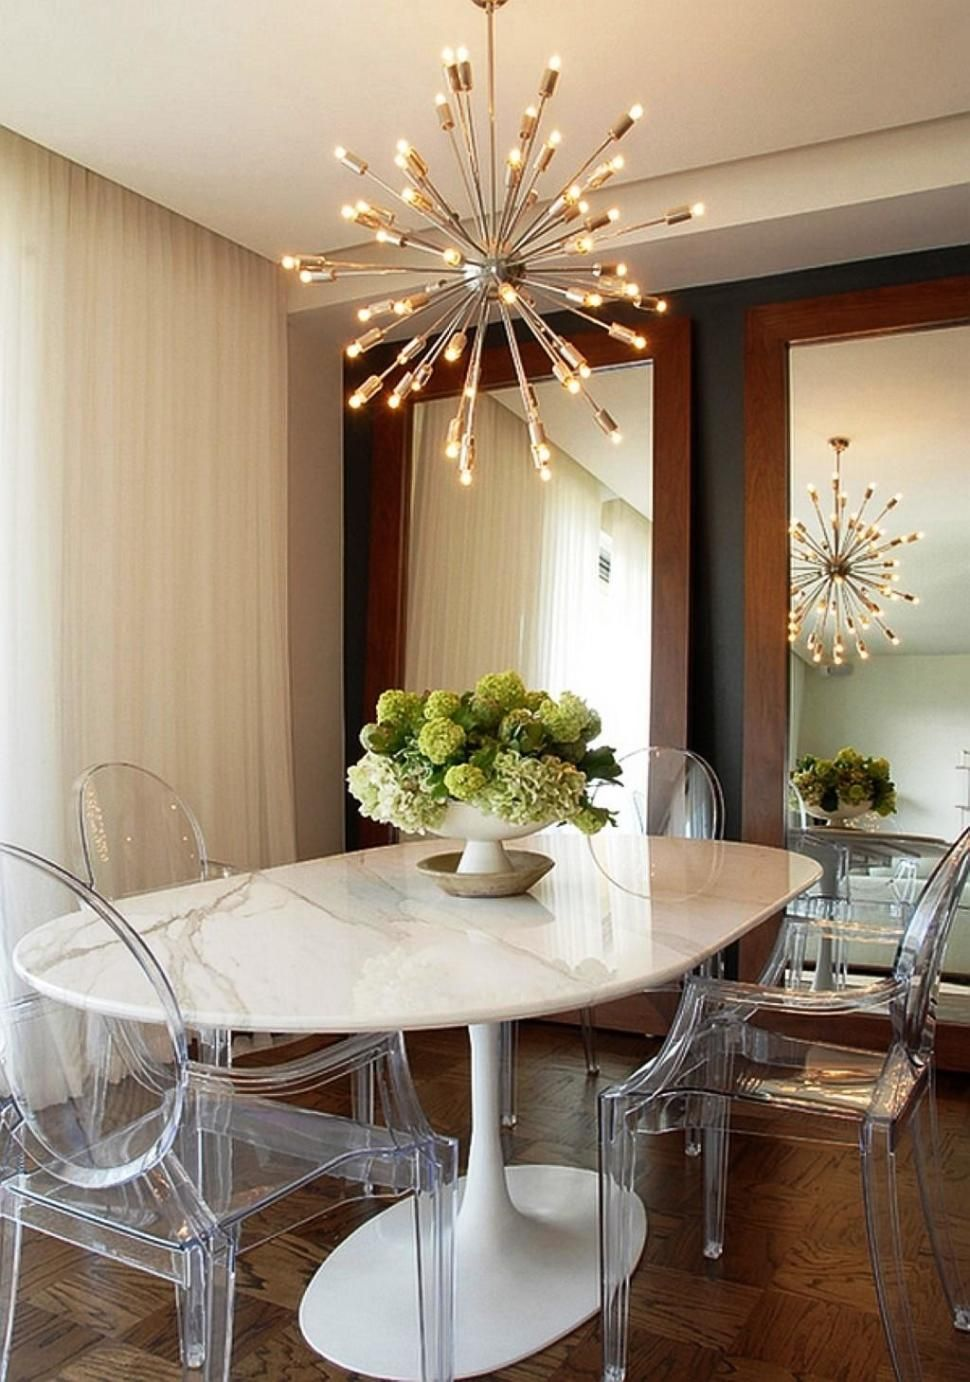 Awesome White Marble Dining Tables awesome marble dining table set for elegant residence ideas along with marble dining table set Interiorawesome Ghost Chairs Also White Marble Dining Table On Laminate Floor Paired With Modern